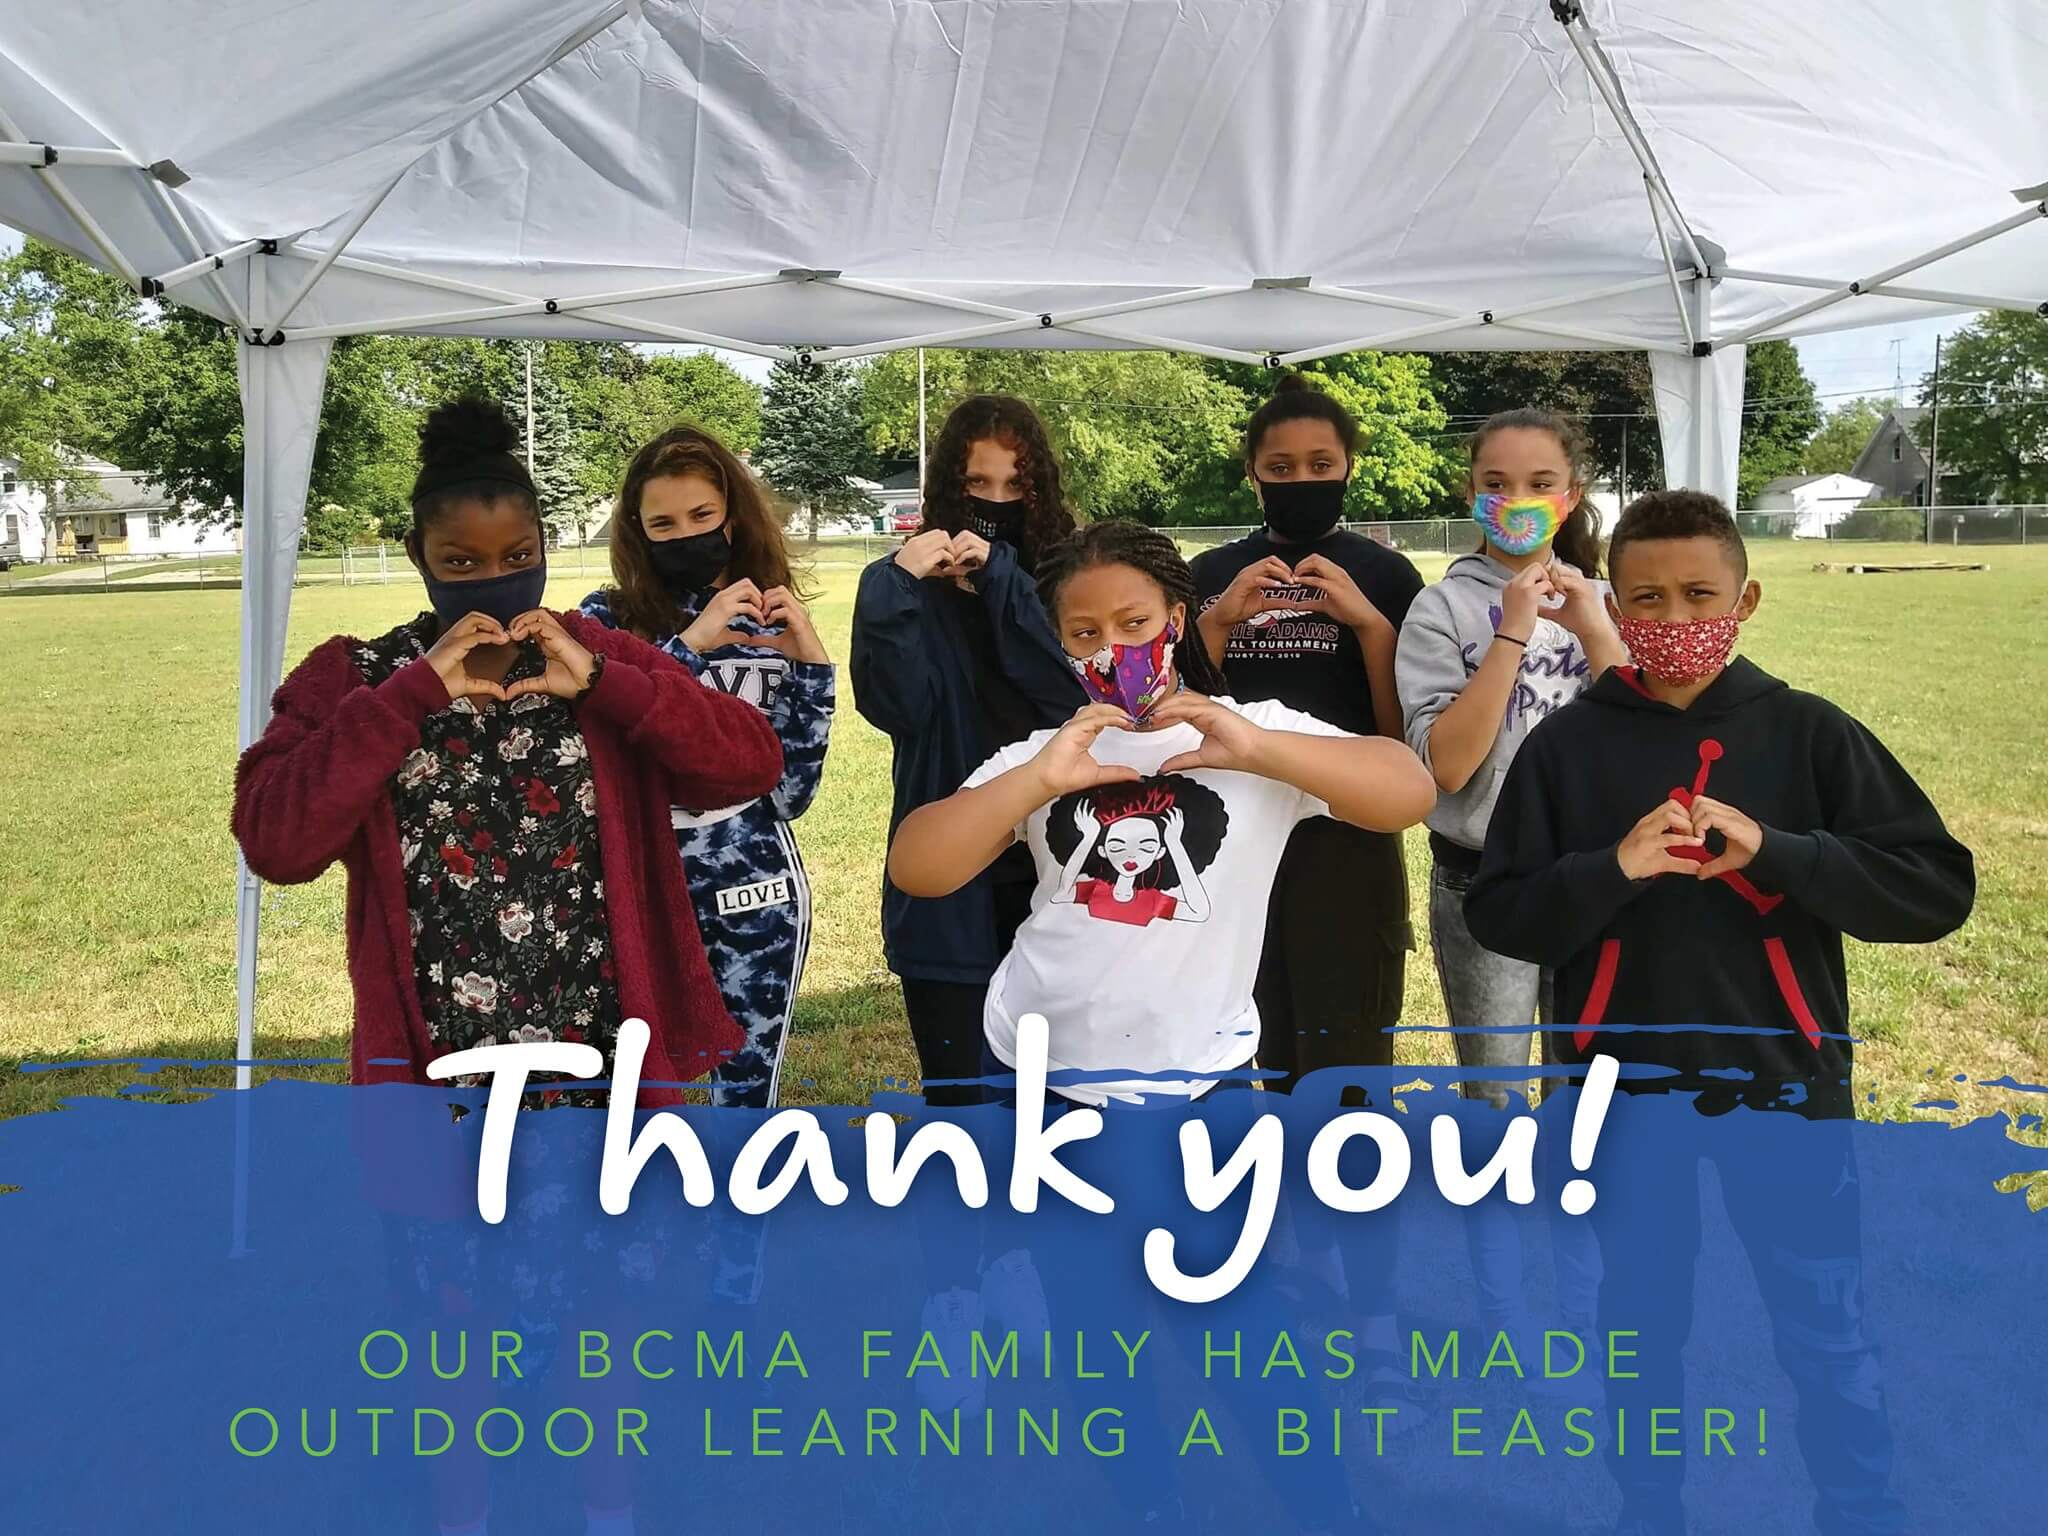 Thank you! Our BCMA family has made outdoor learning a bit easier